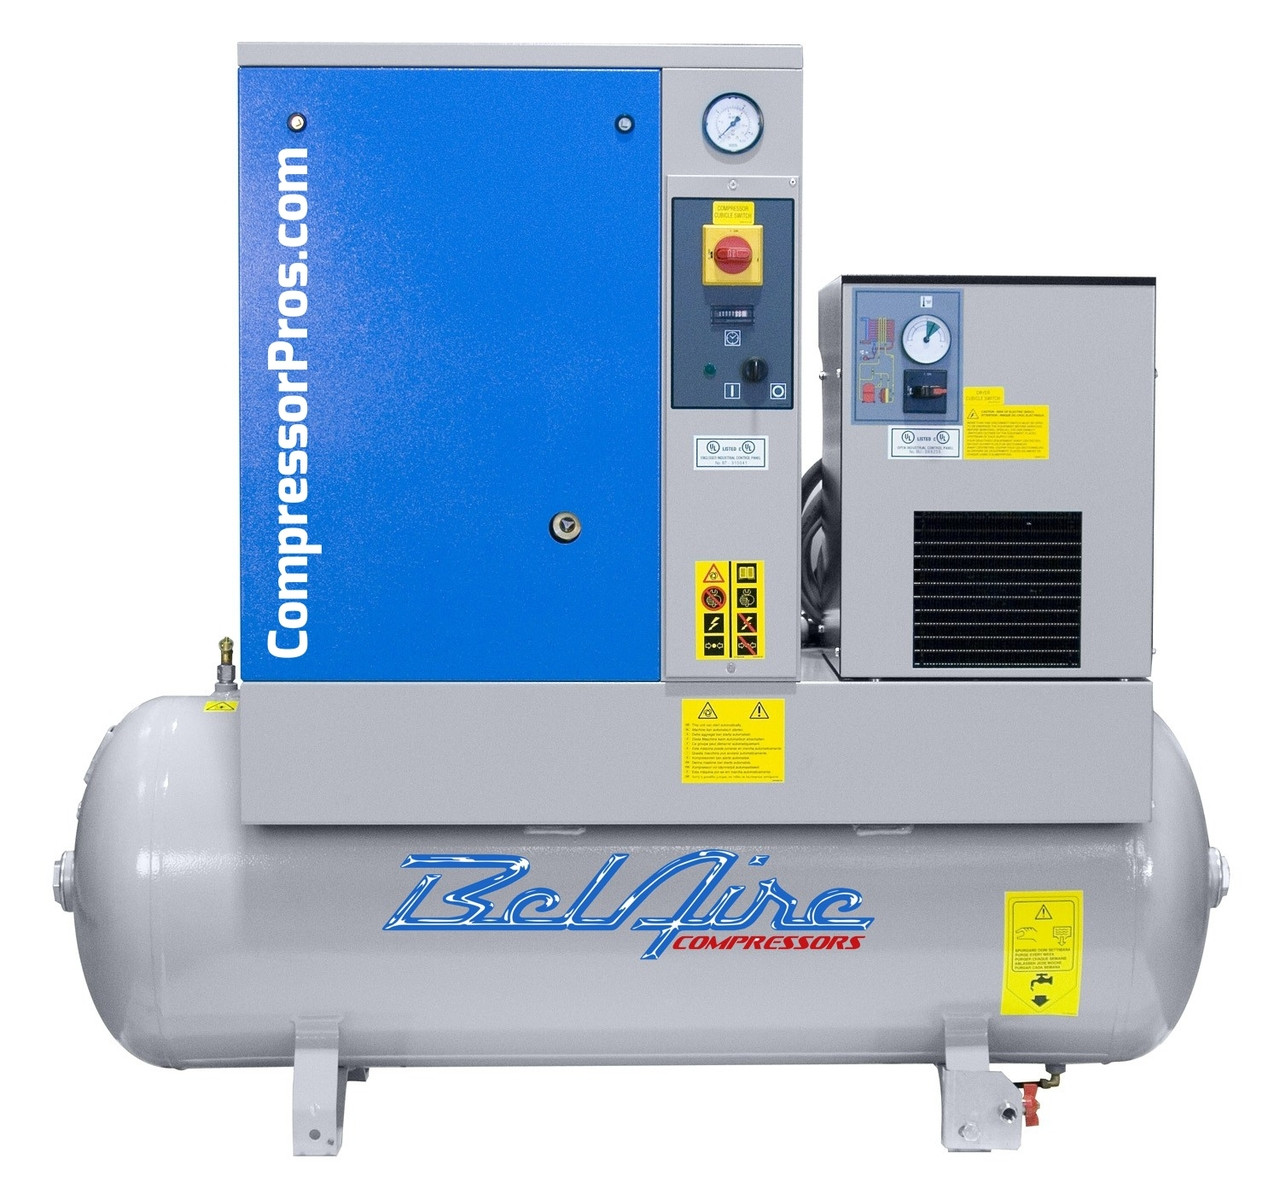 BelAire BR75501D 7.5 HP 208-230 Volt Single Phase Rotary Screw Air Compressor with Dryer